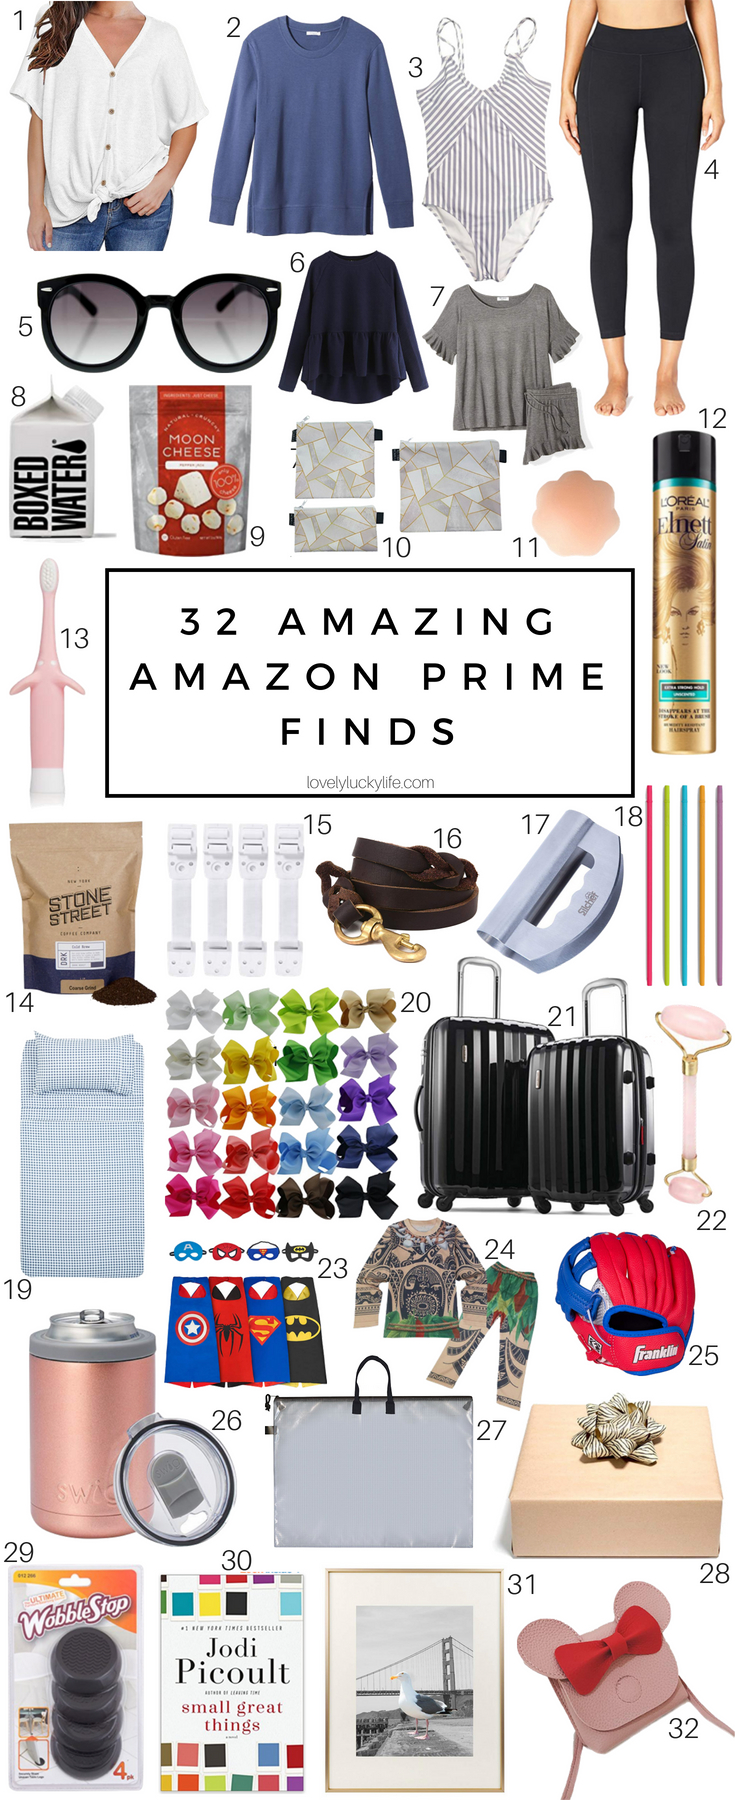 amazon prime finds for moms - the best stuff on Amazon for moms, kids & the house